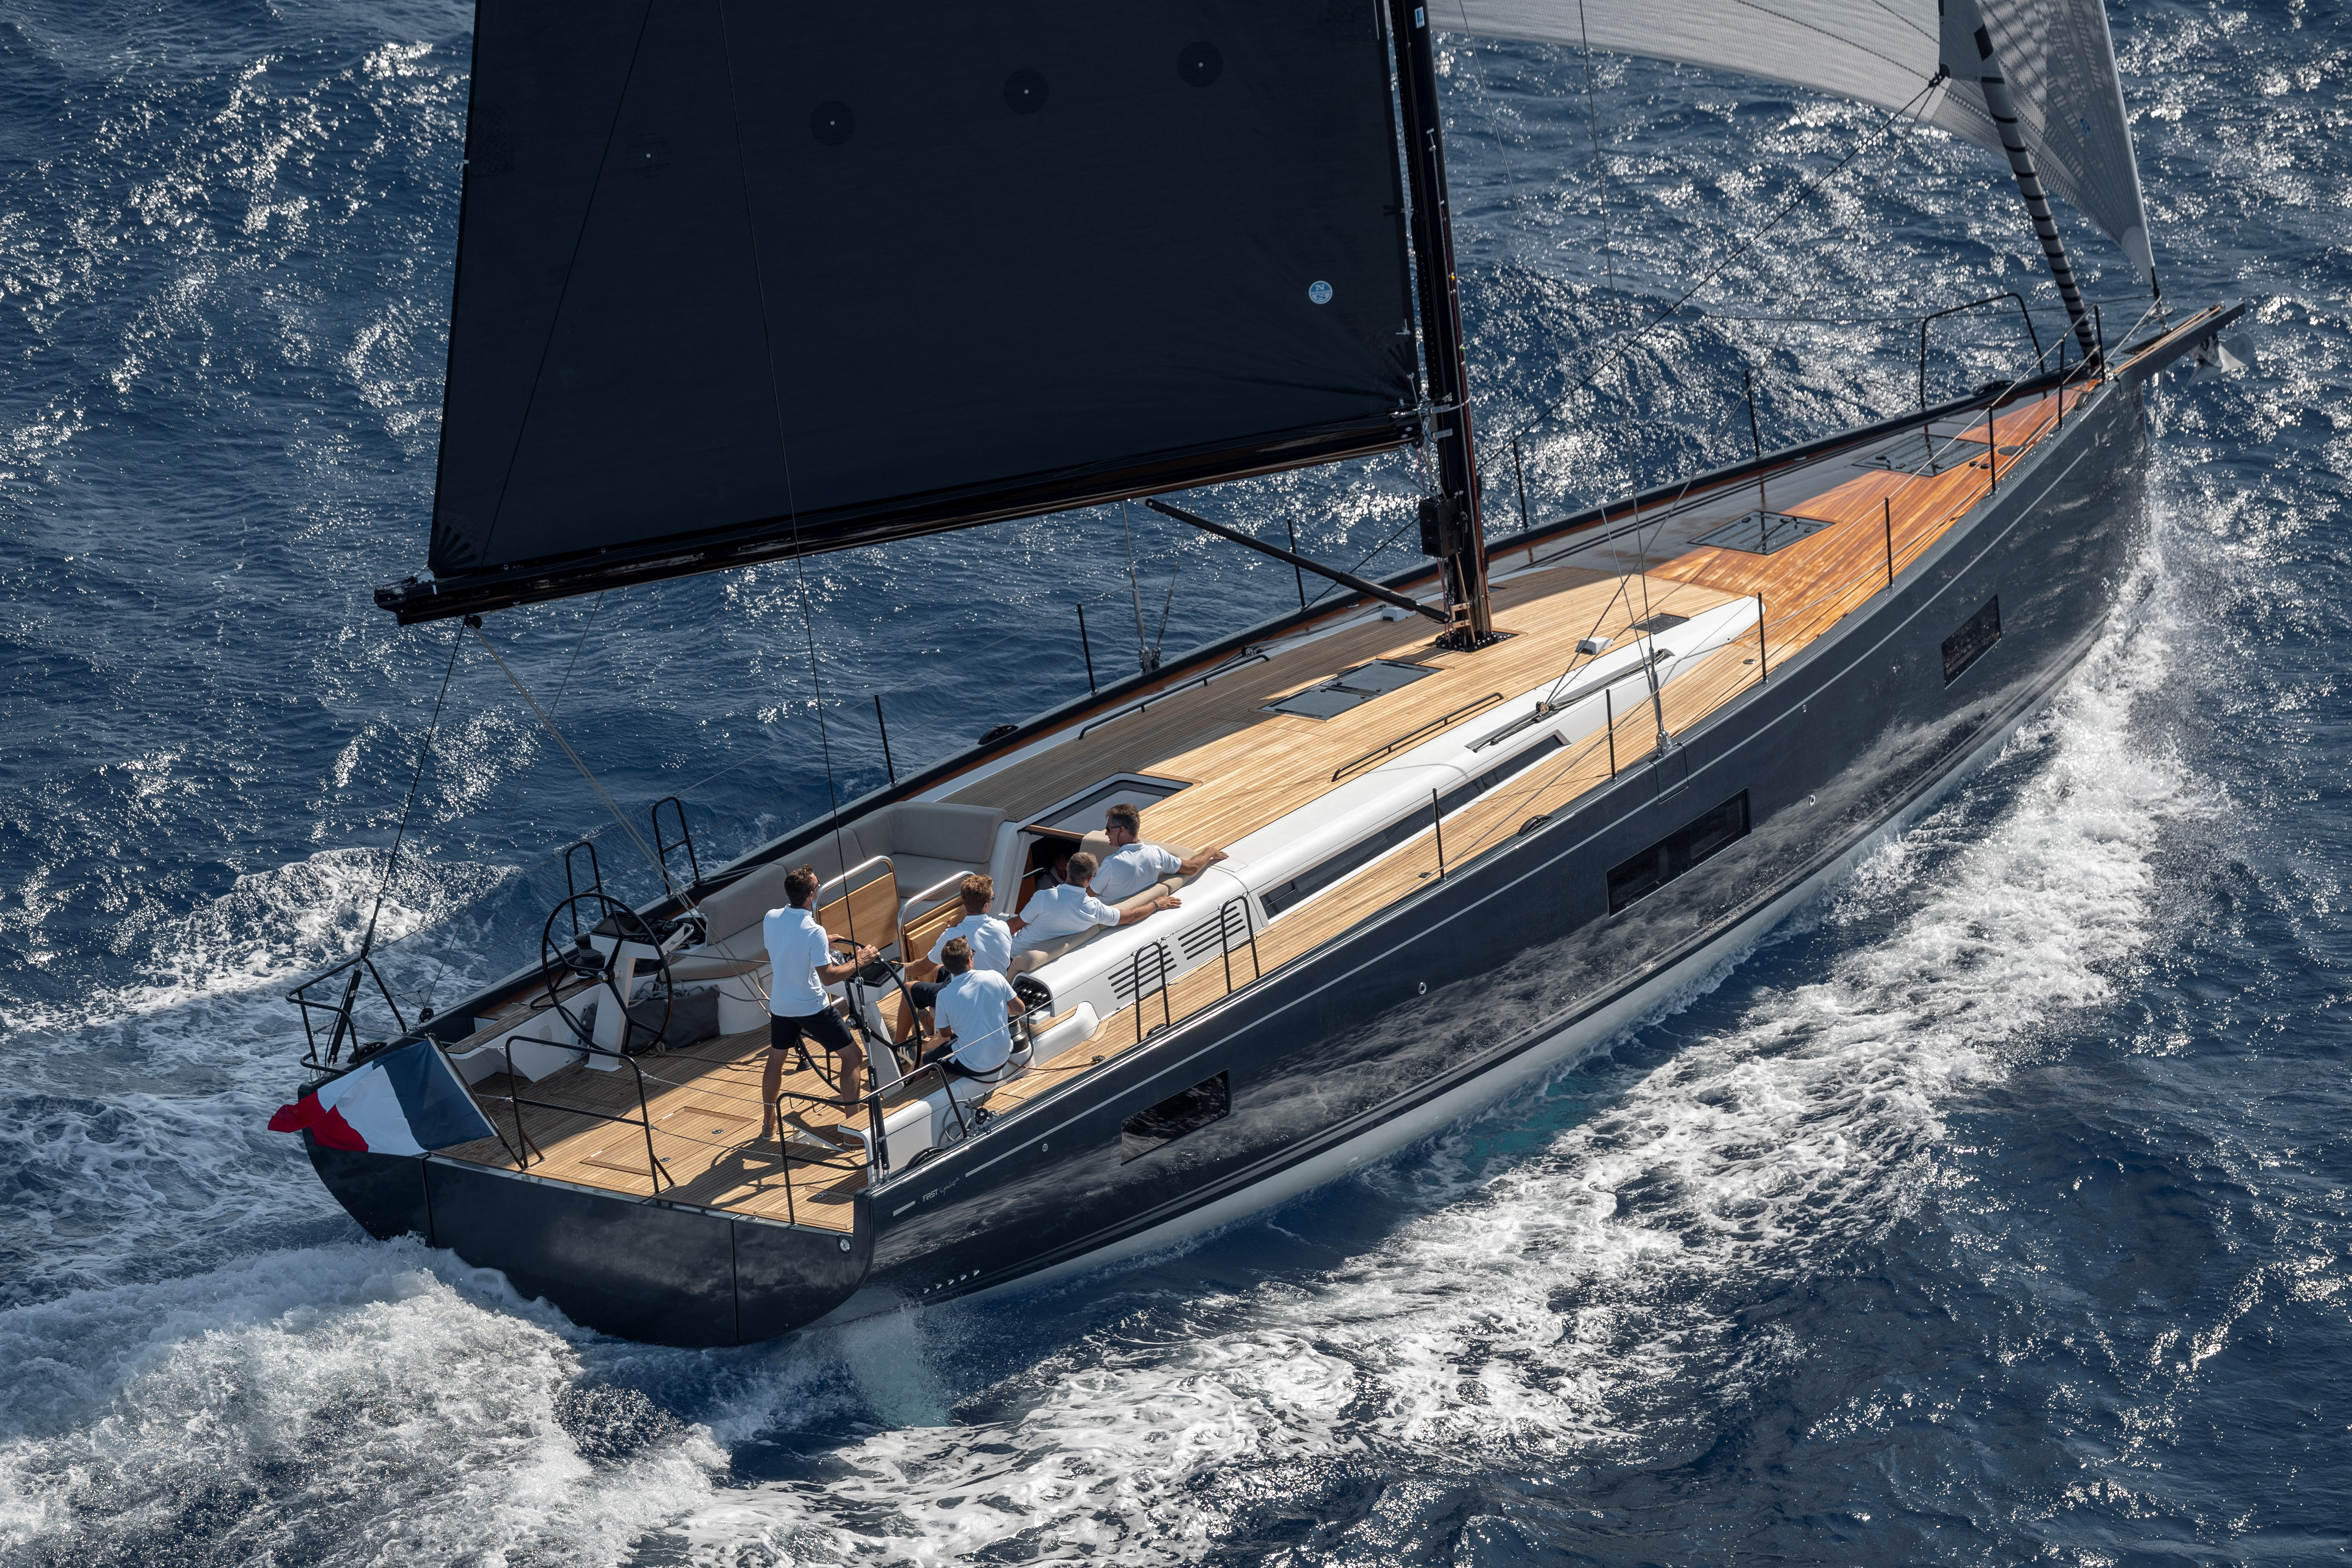 Beneteau First Yacht 53 Beneteau First Yacht 53 - Sailing